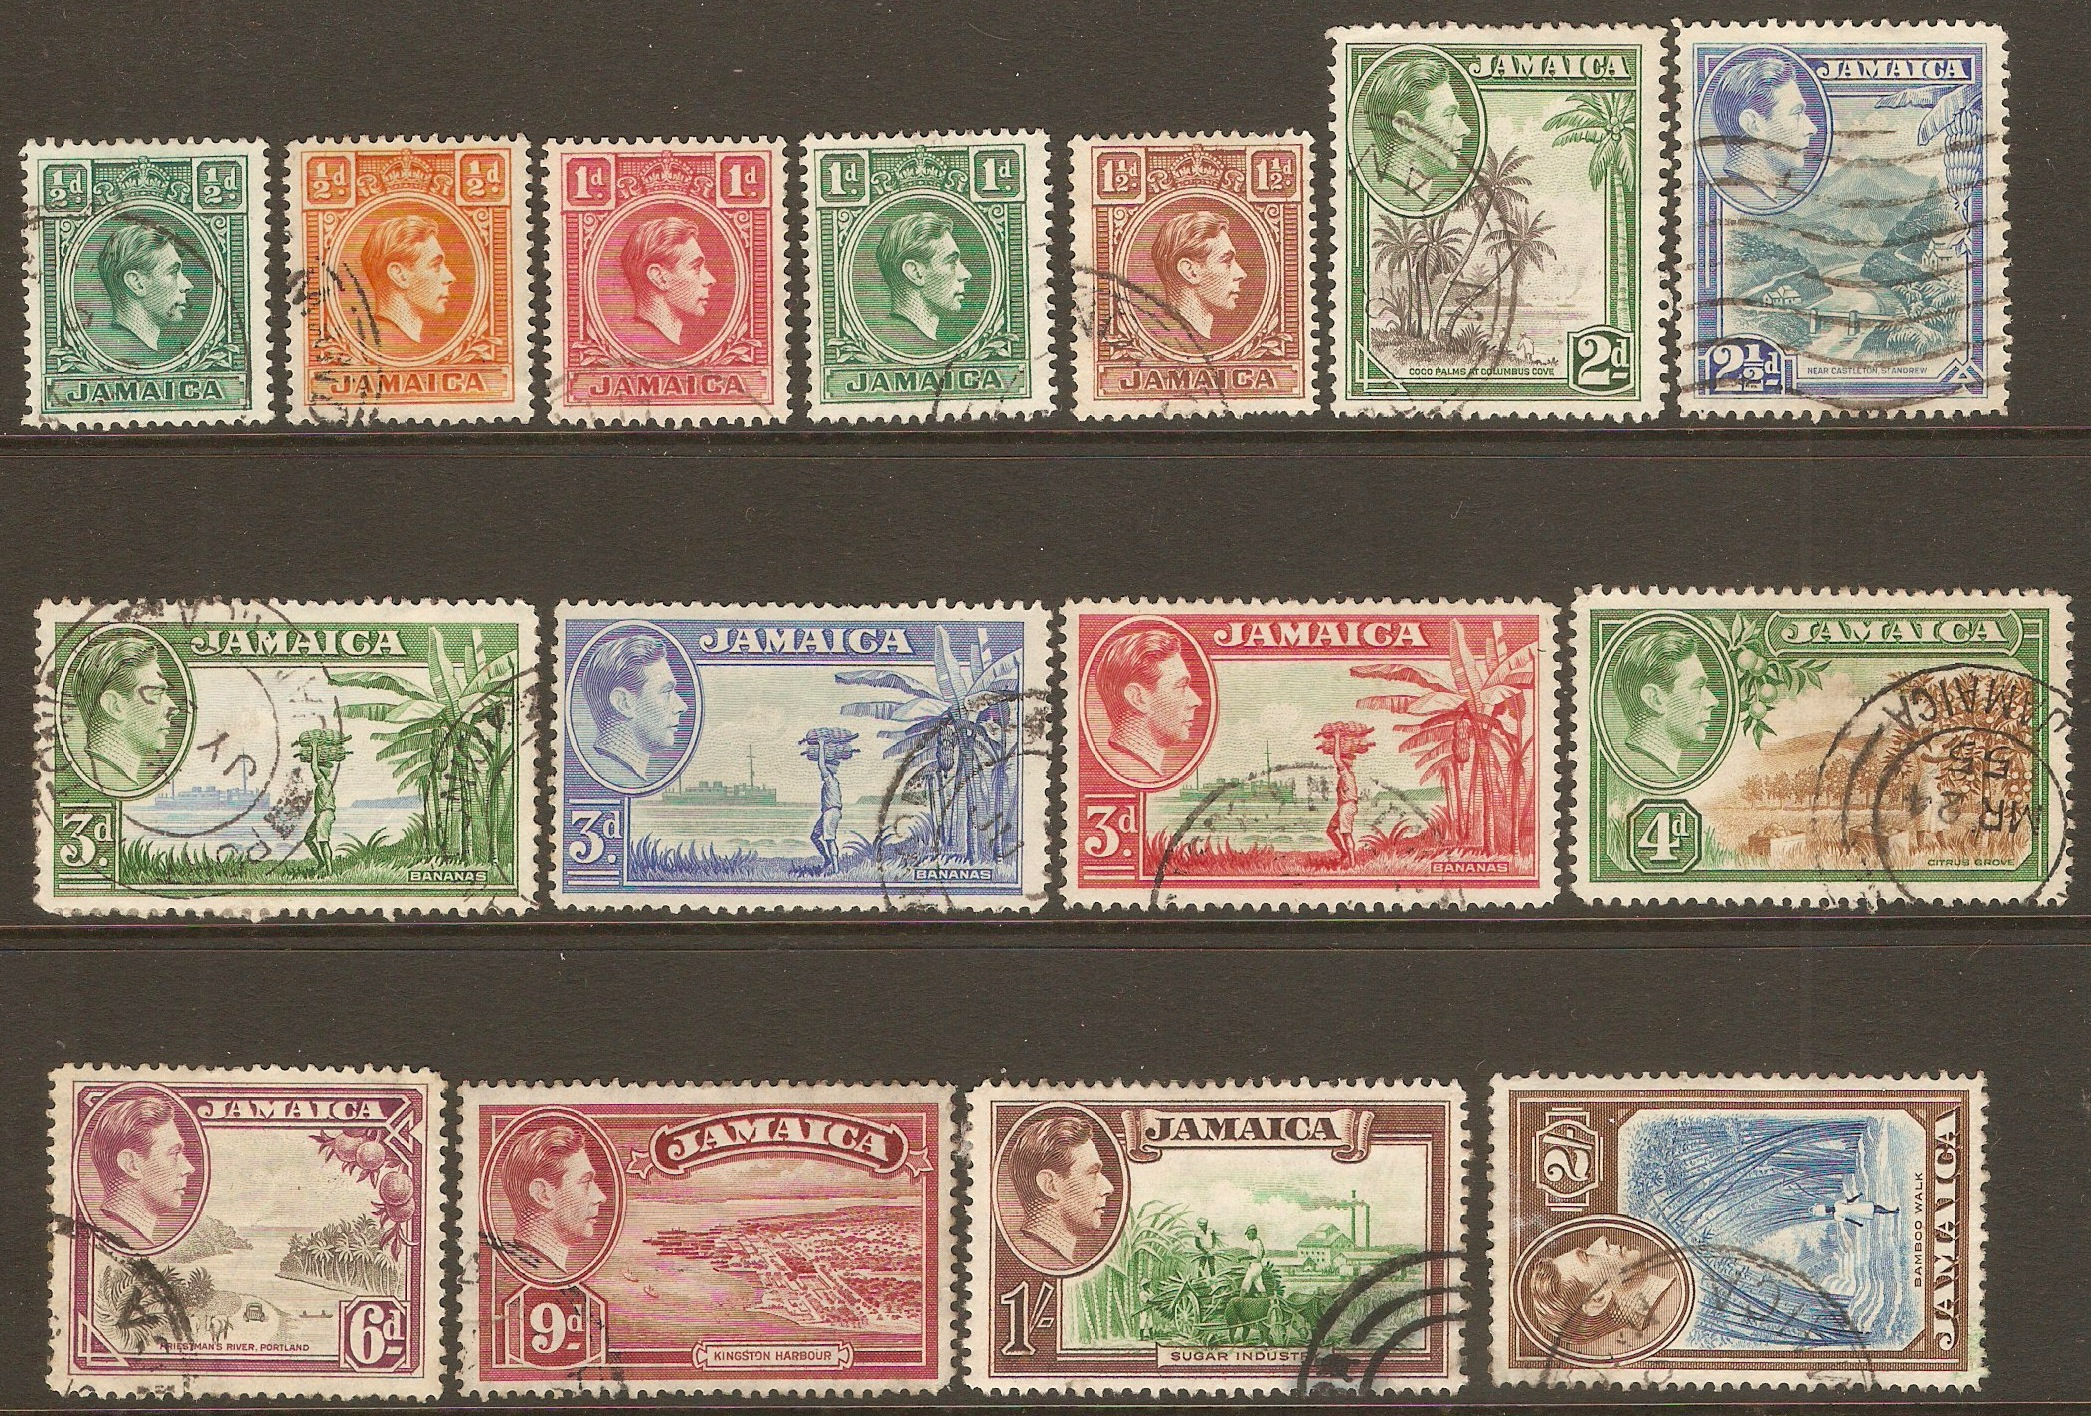 Jamaica 1938 King George VI definitives. SG121-SG131.